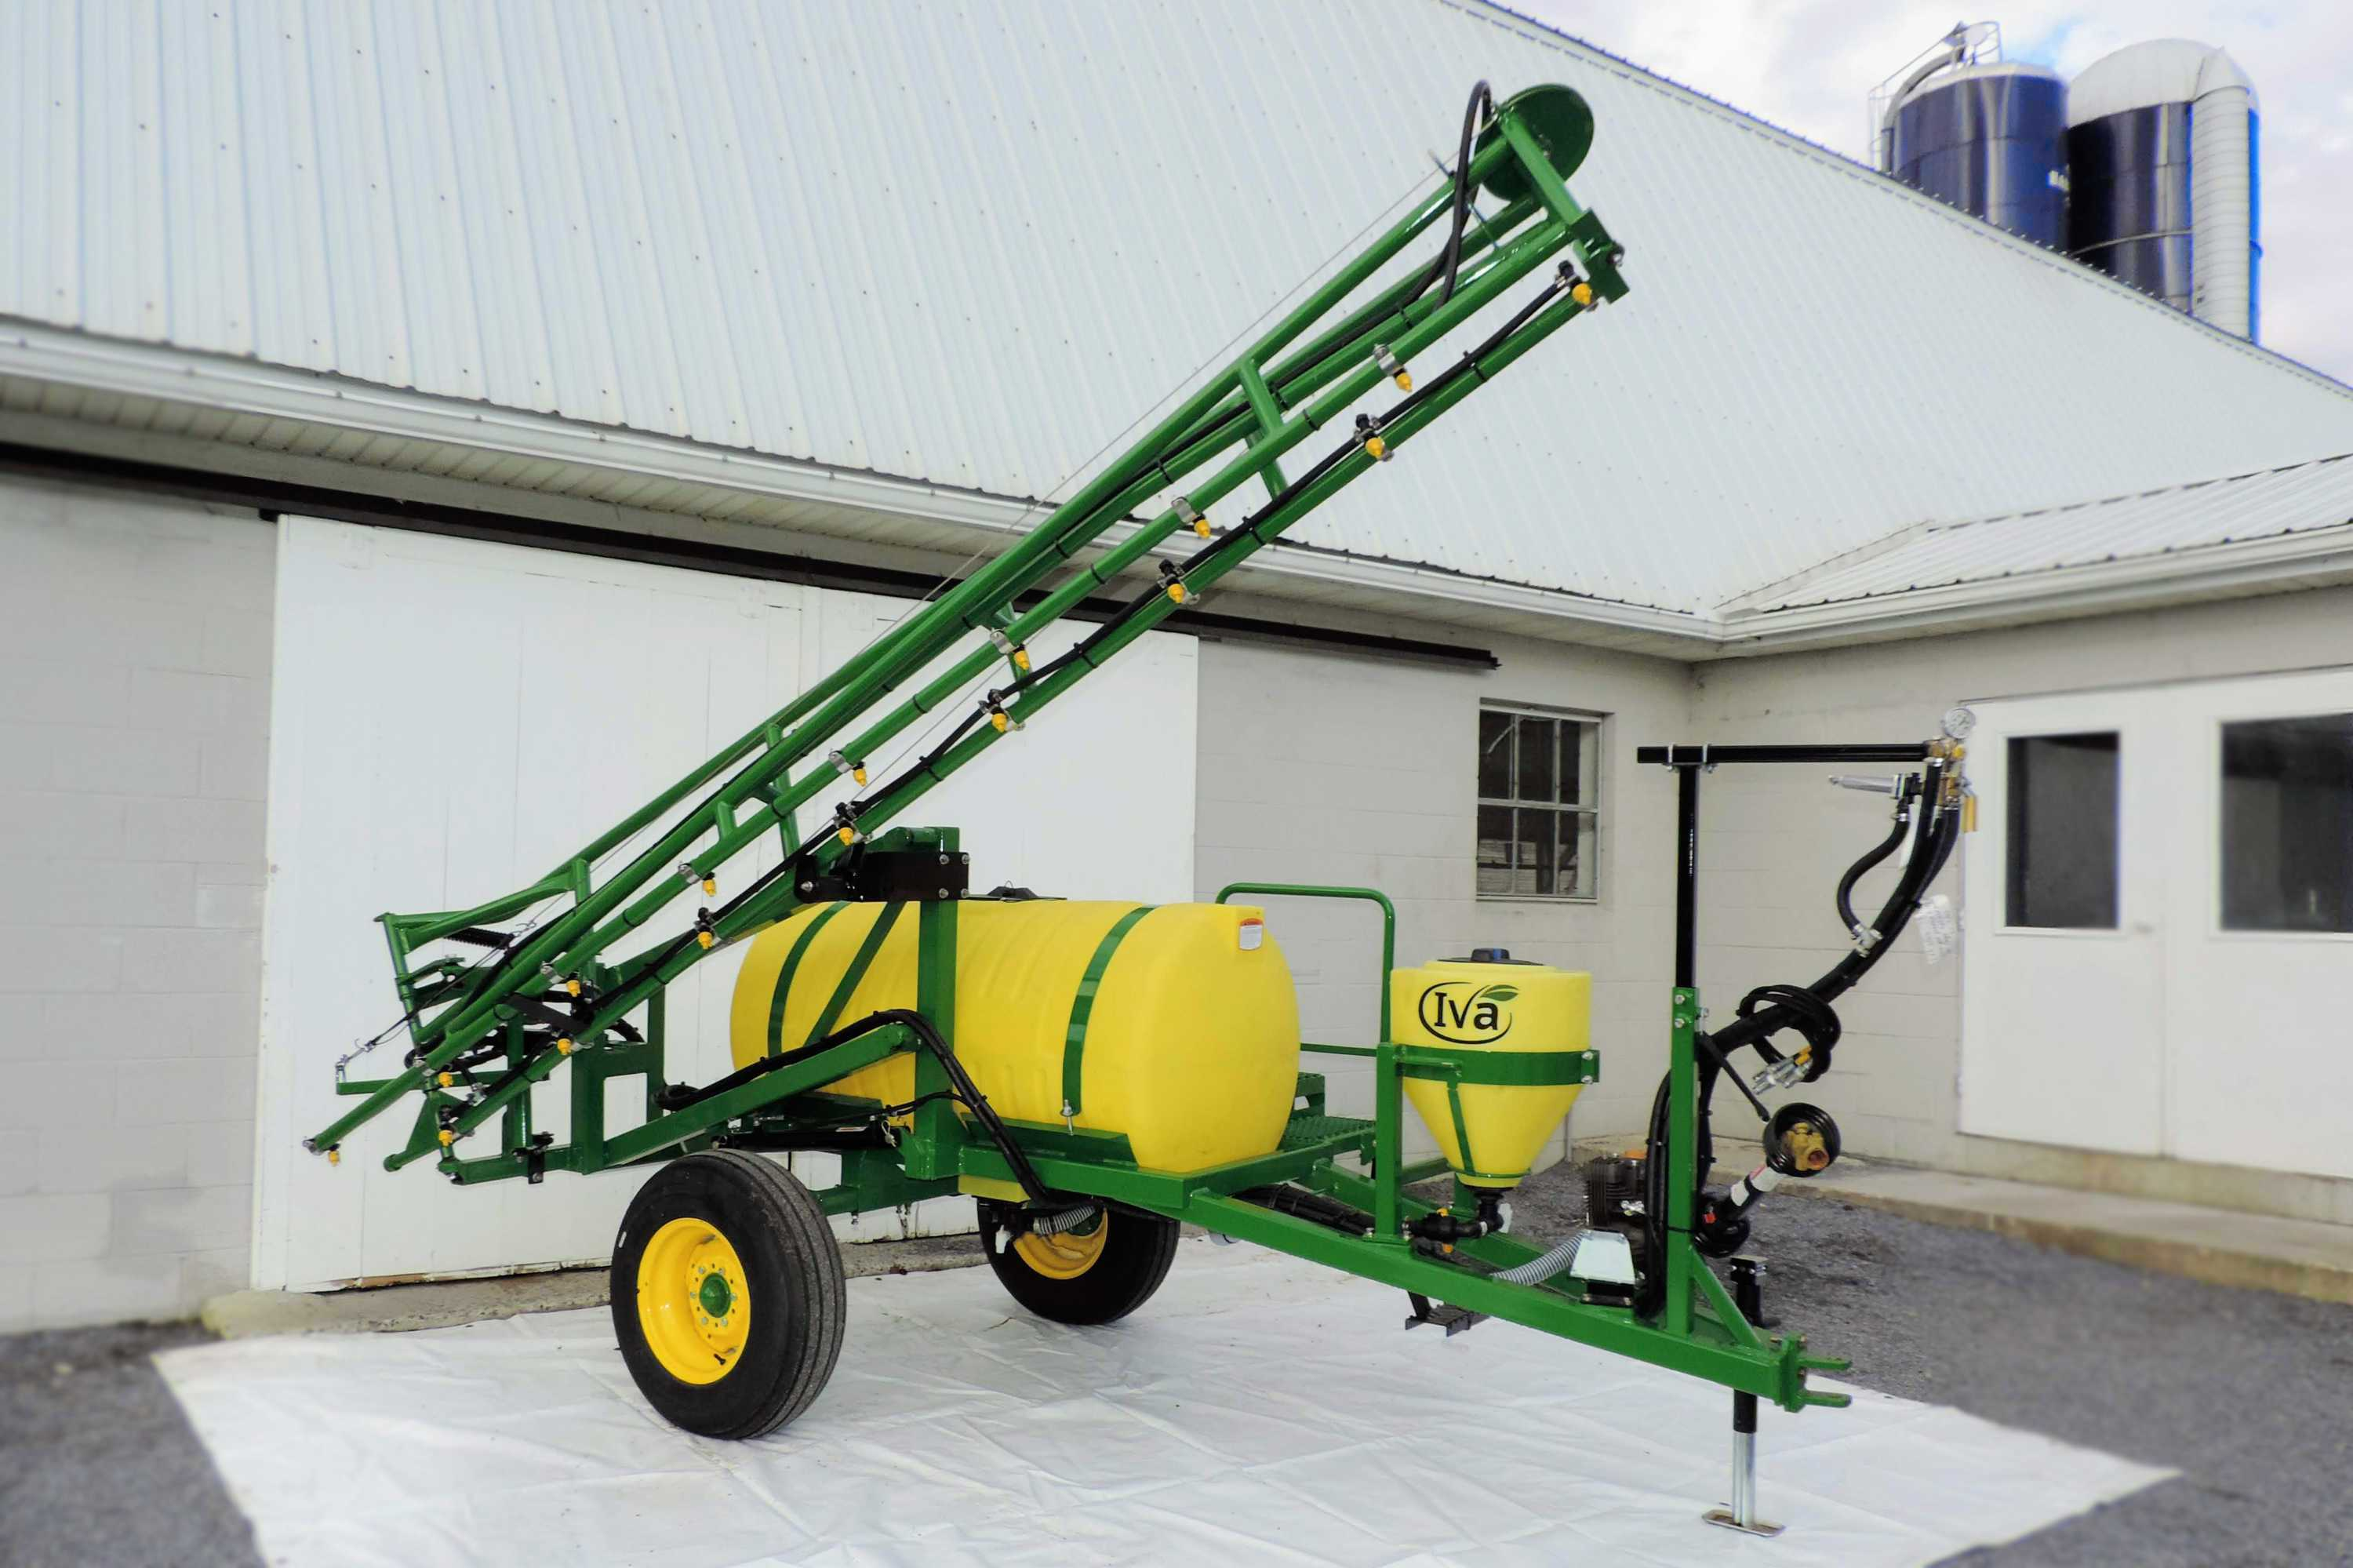 200 gallon Trailer Produce Sprayer